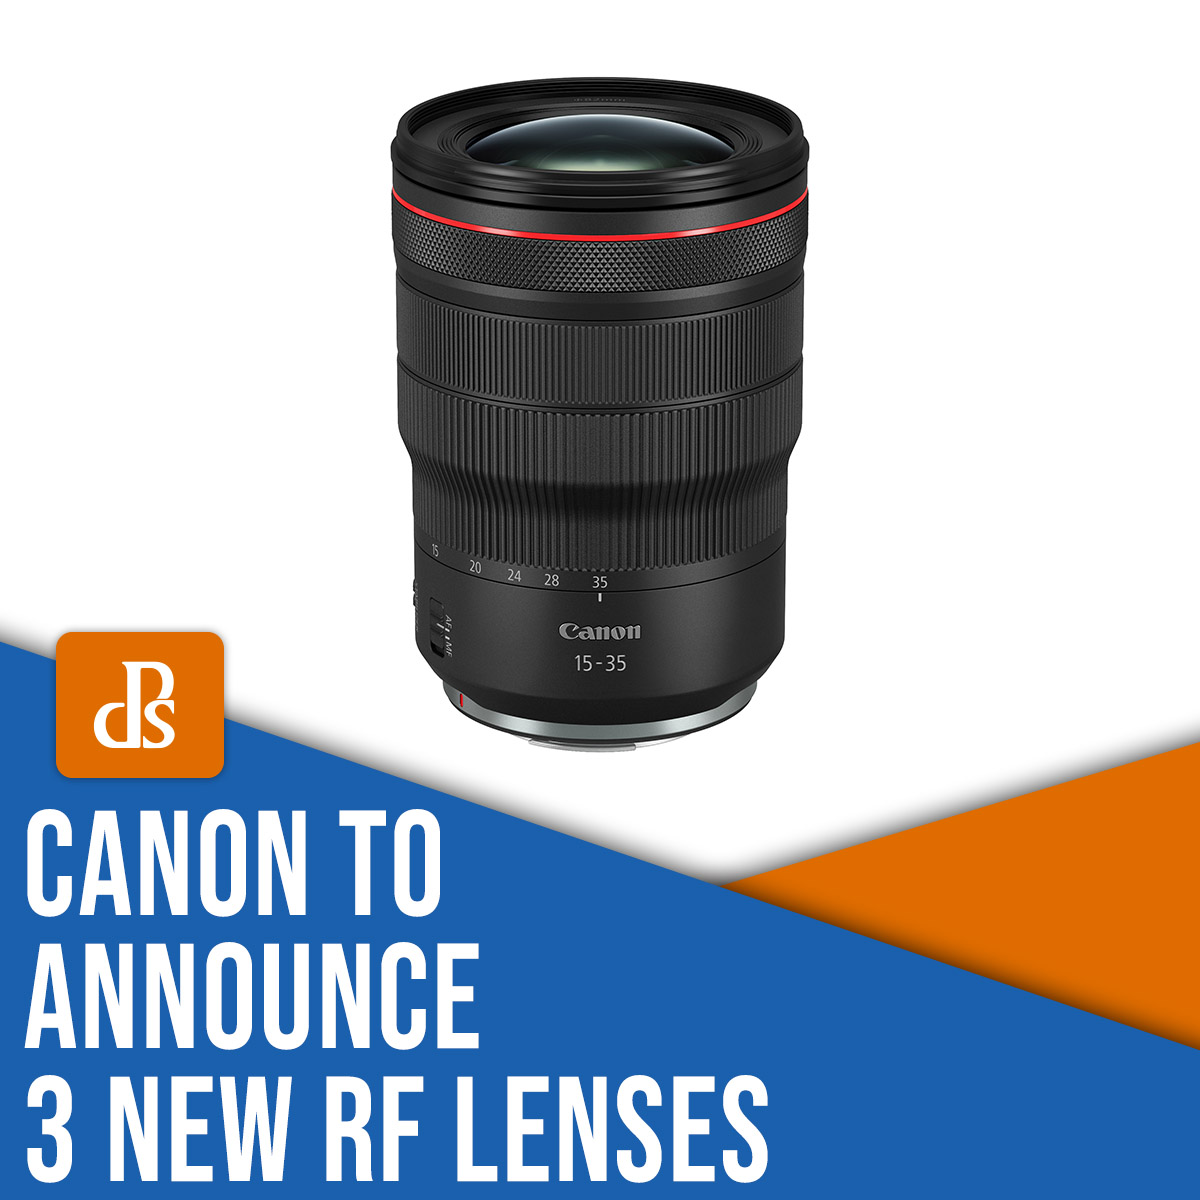 Canon to announce 3 new RF lenses